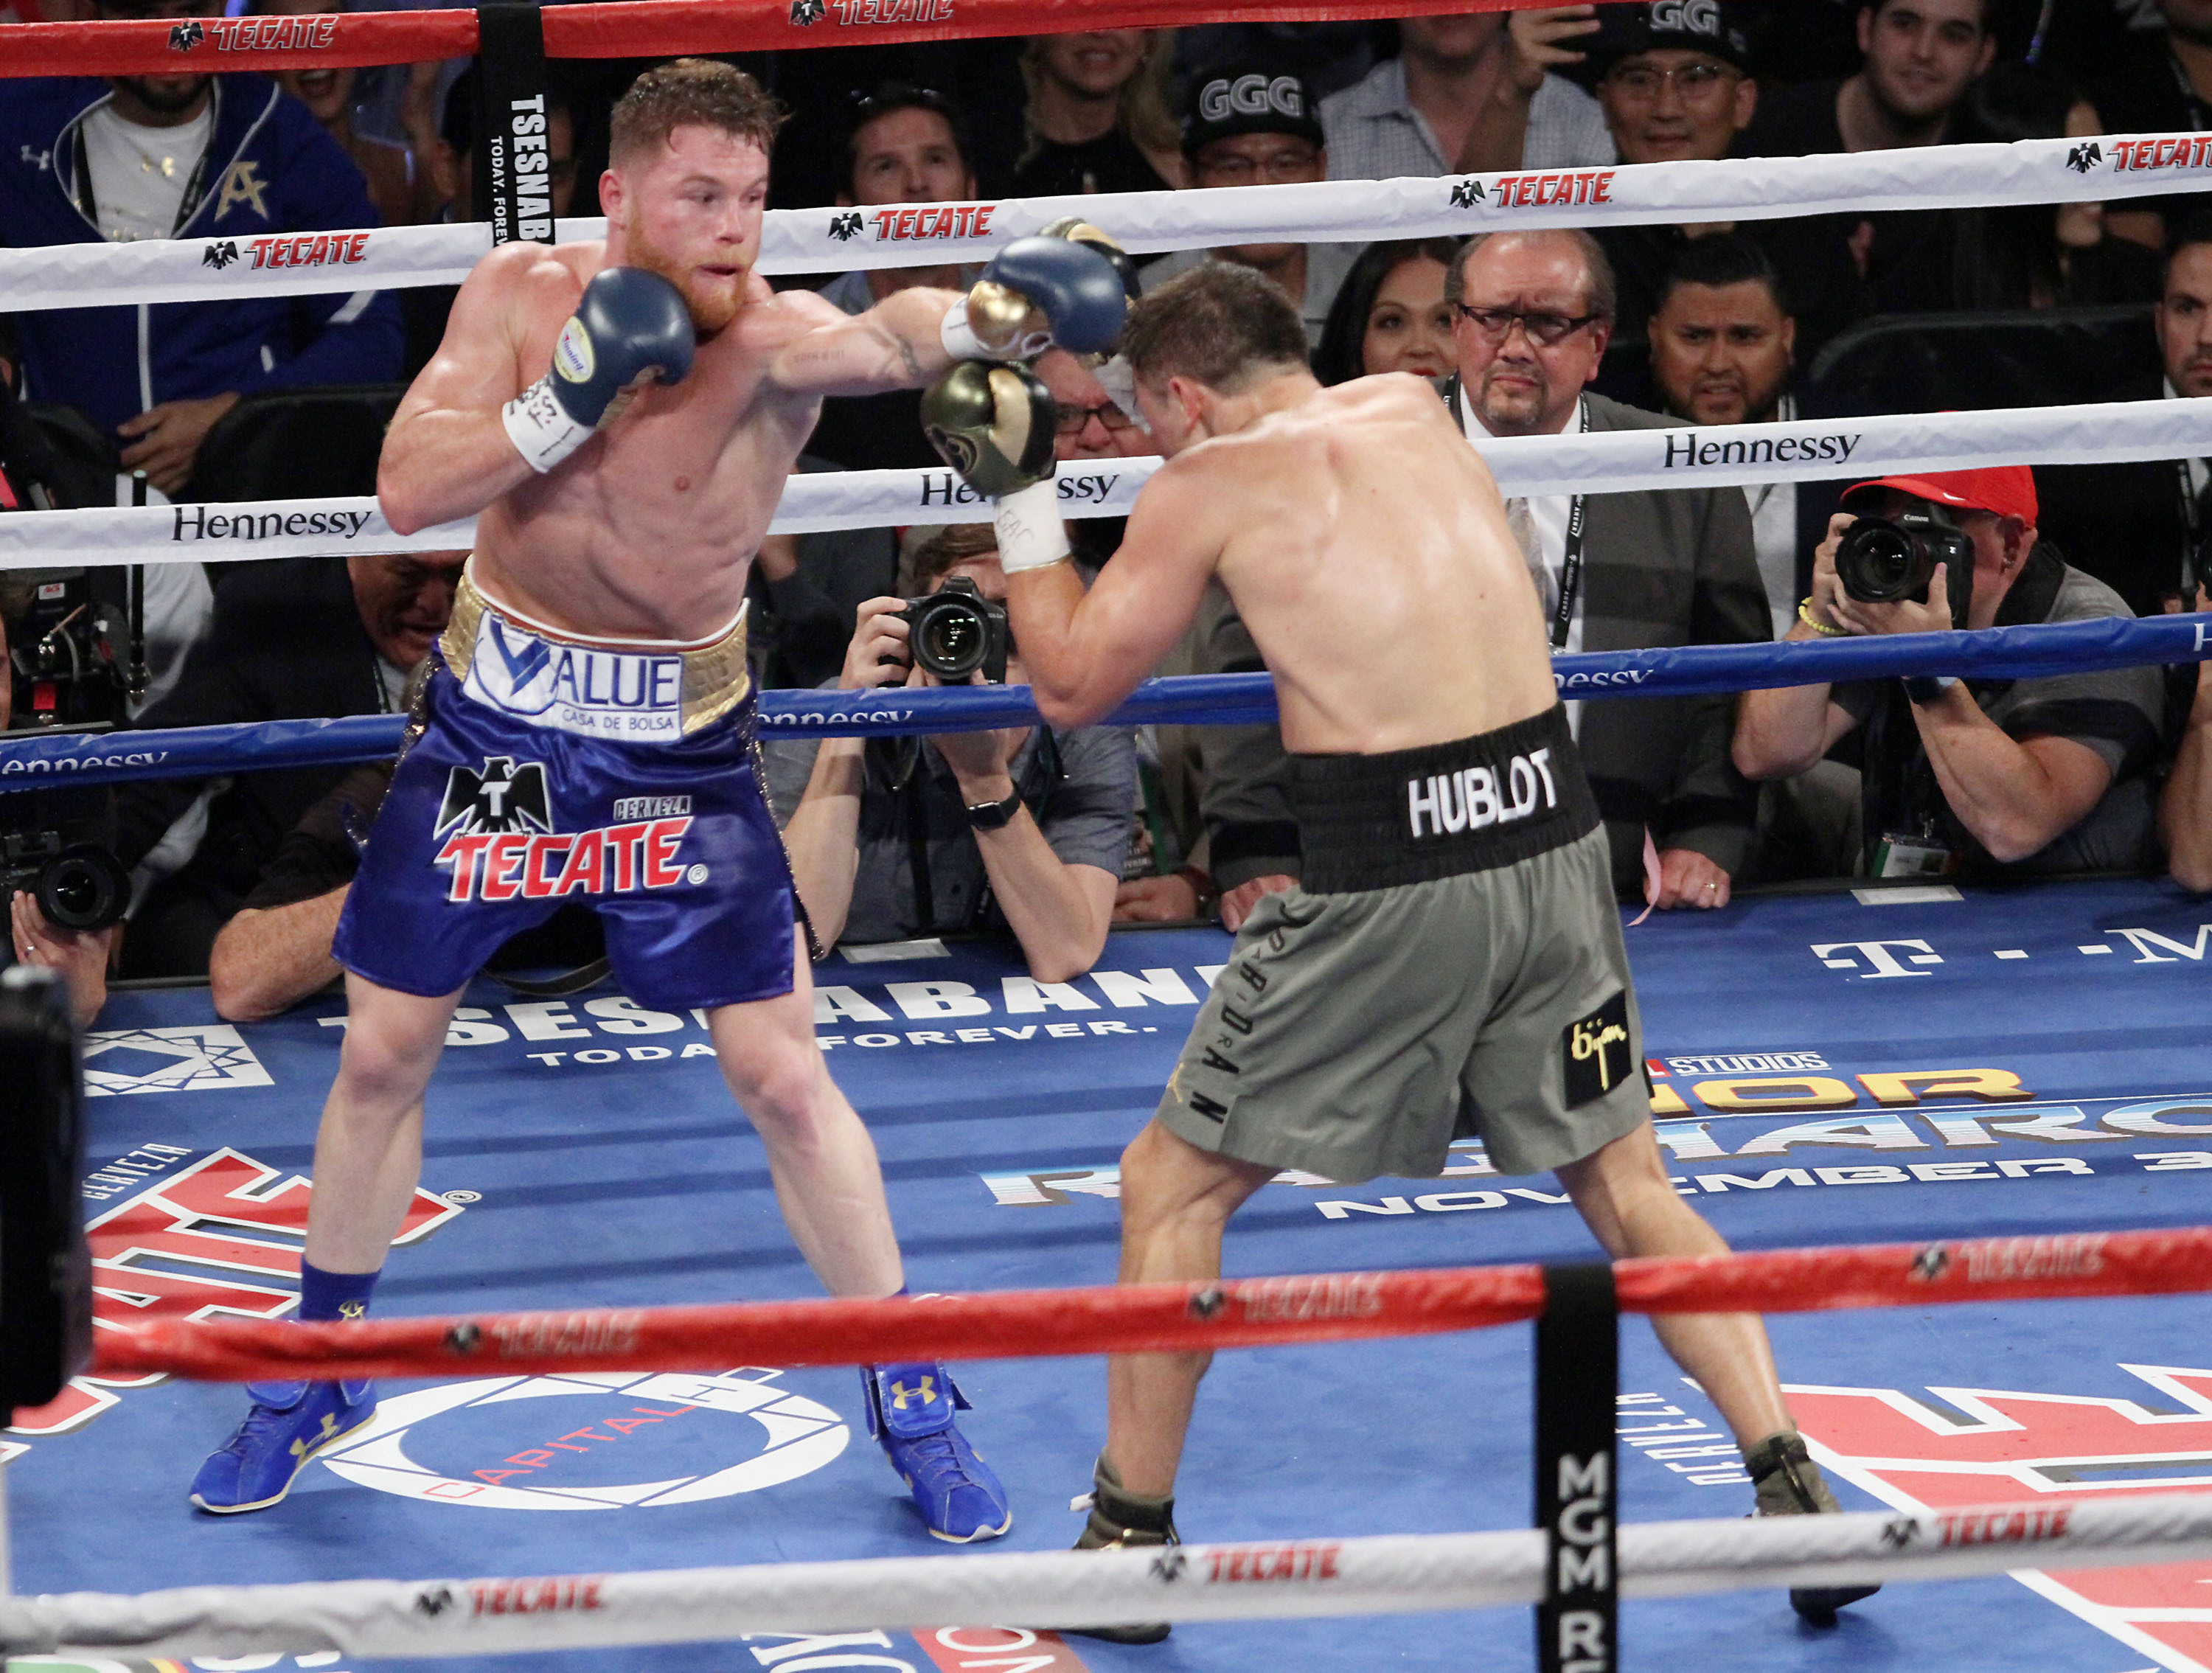 'Canelo' and 'GGG' in action. Image: PA